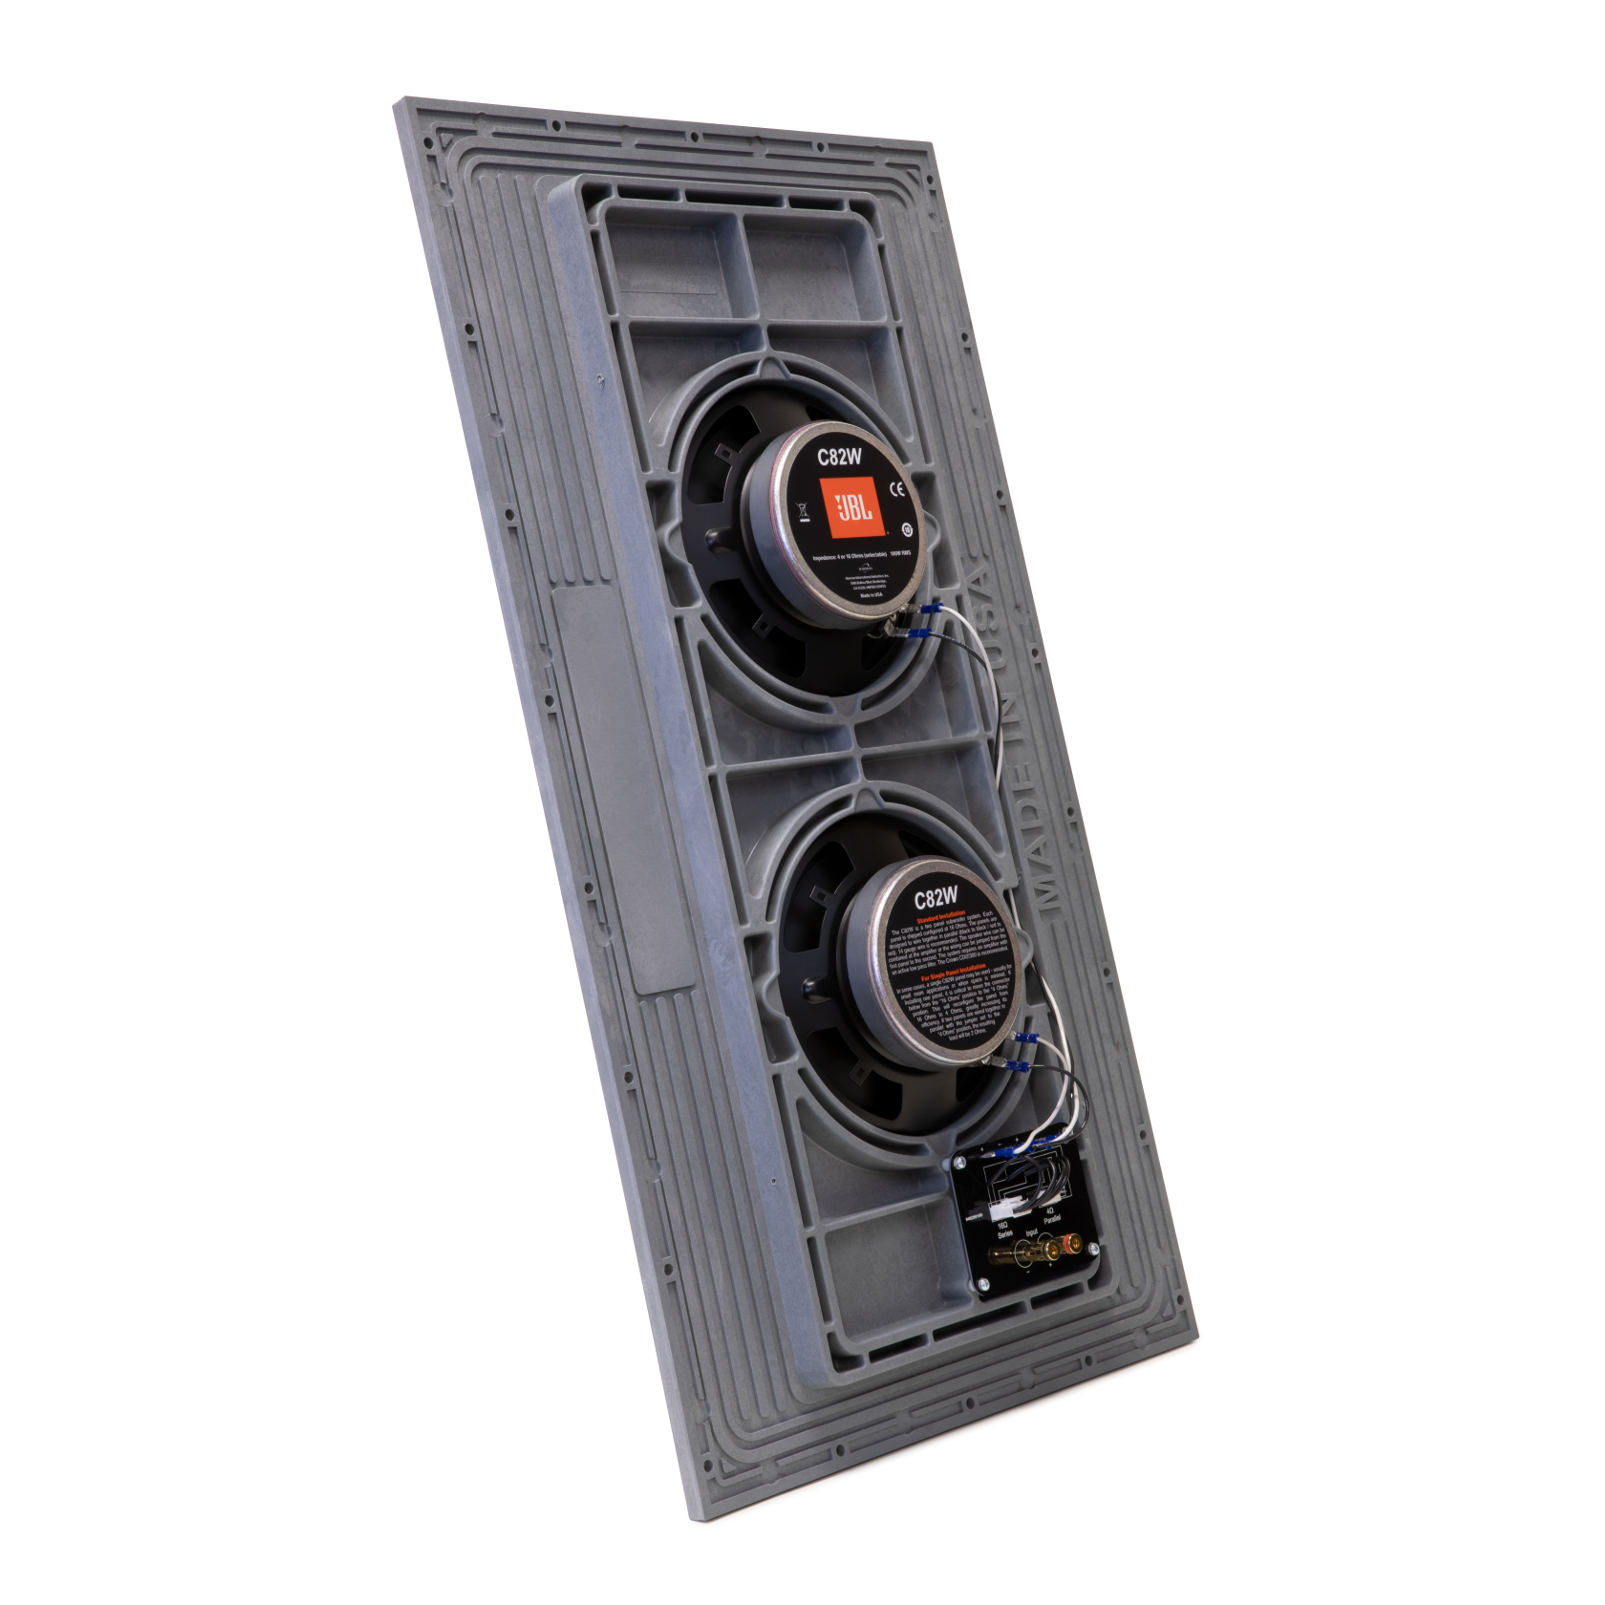 Conceal C82W - Grey - Dual-panel, Dual 8-inch (200mm) Invisible Subwoofer System - Detailshot 1